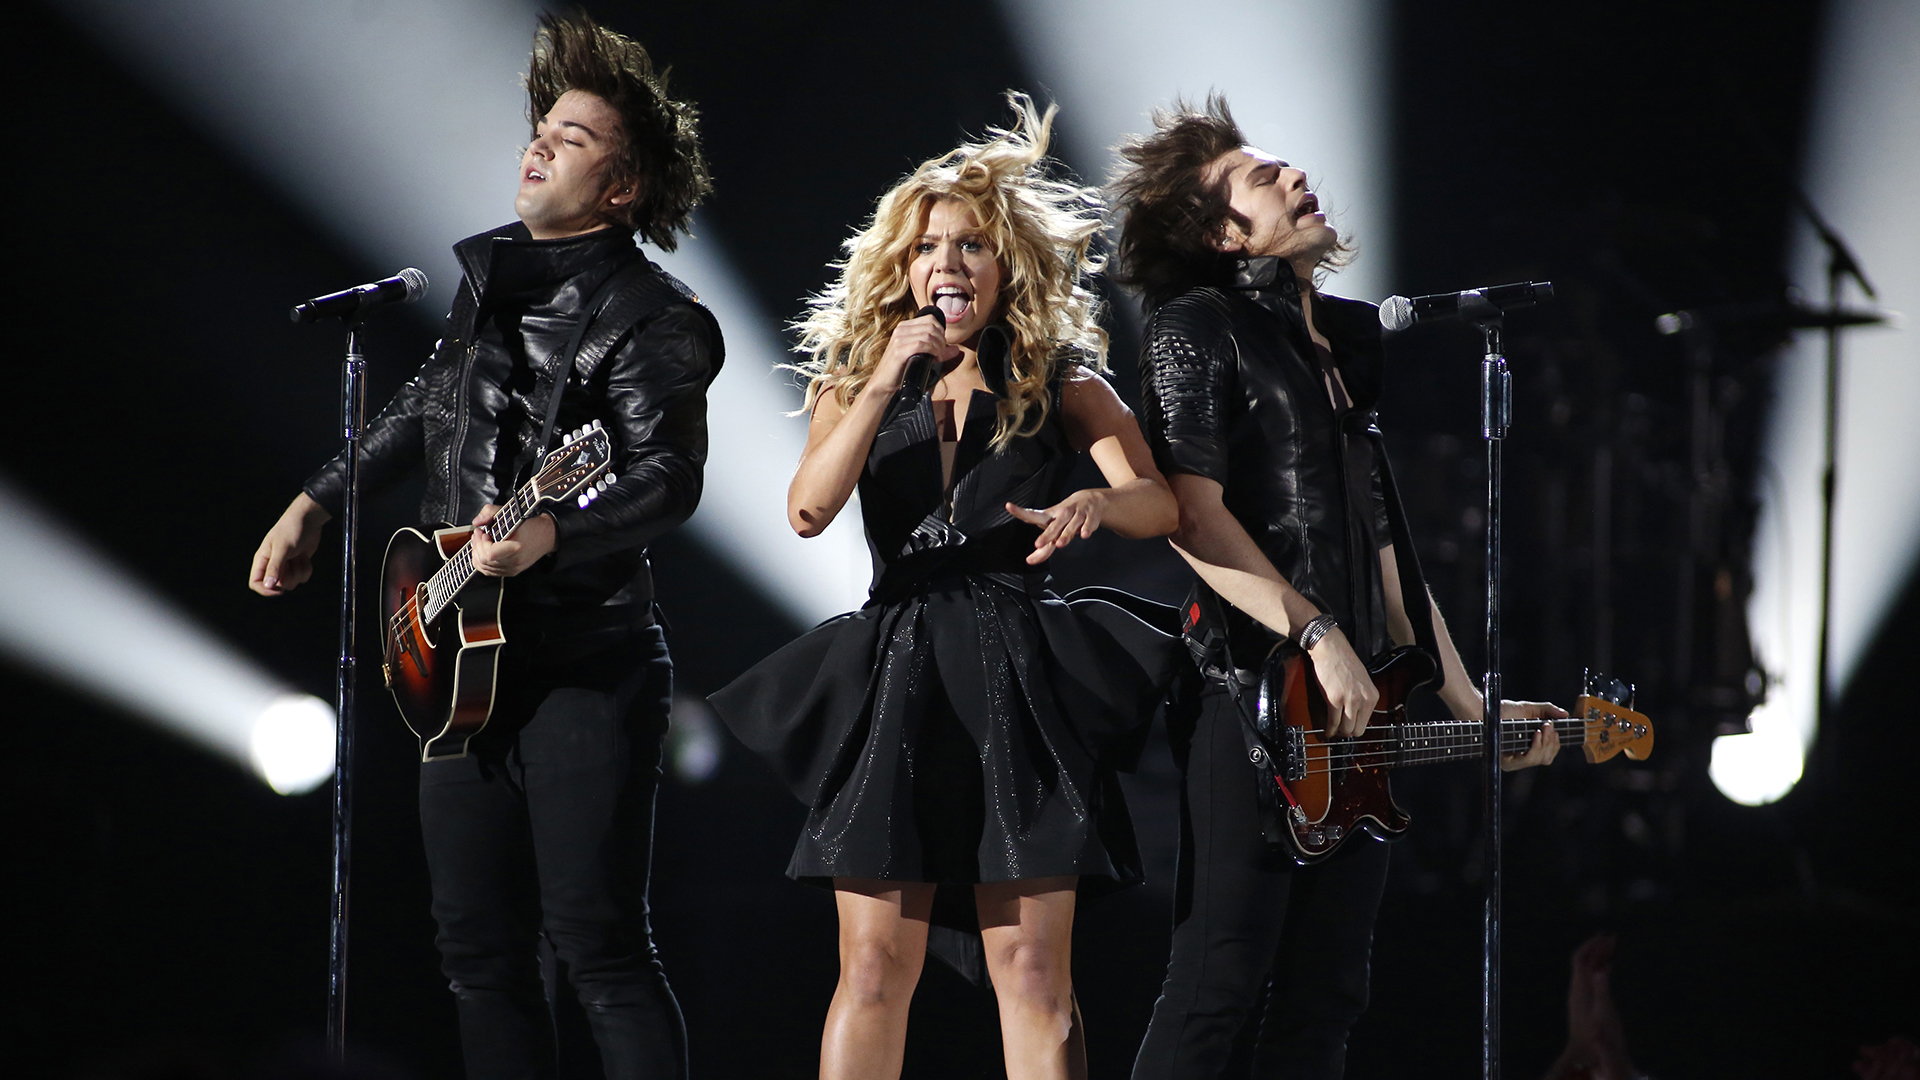 35. The Band Perry perform